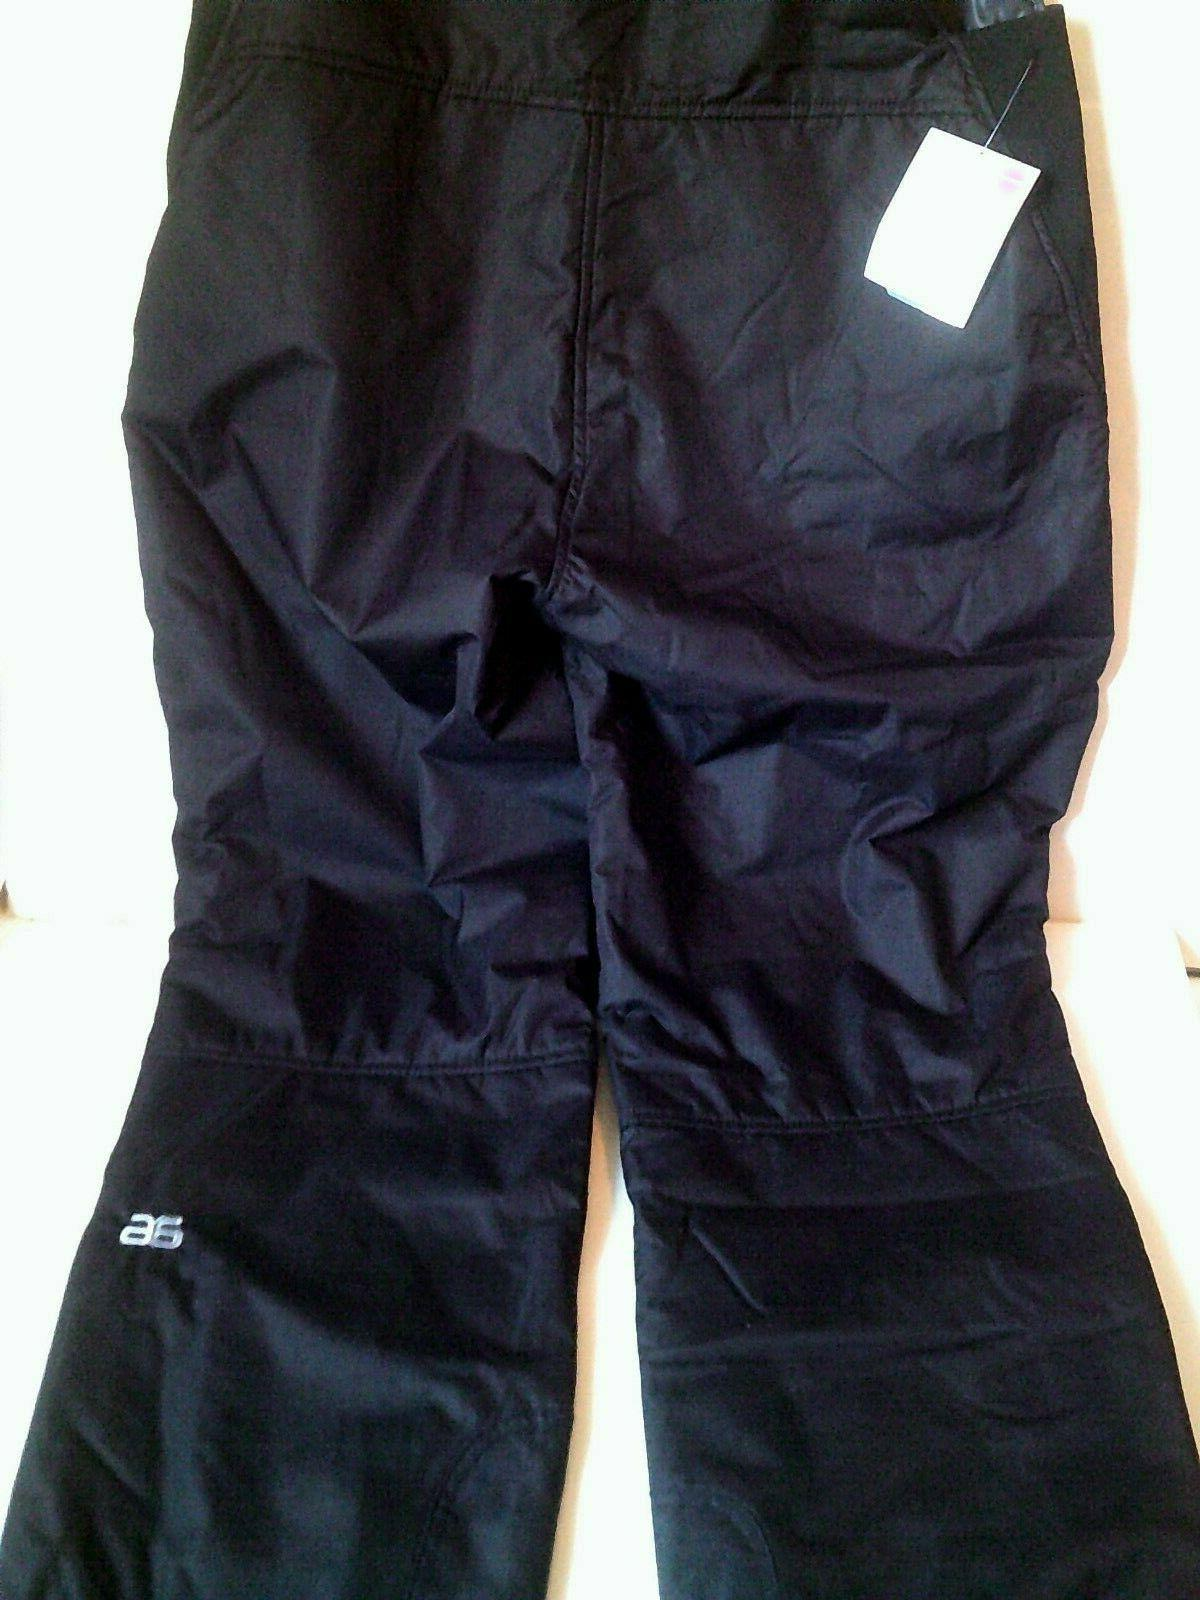 Arctix Women's Black Bib Overall Snow Pants Plus NWT